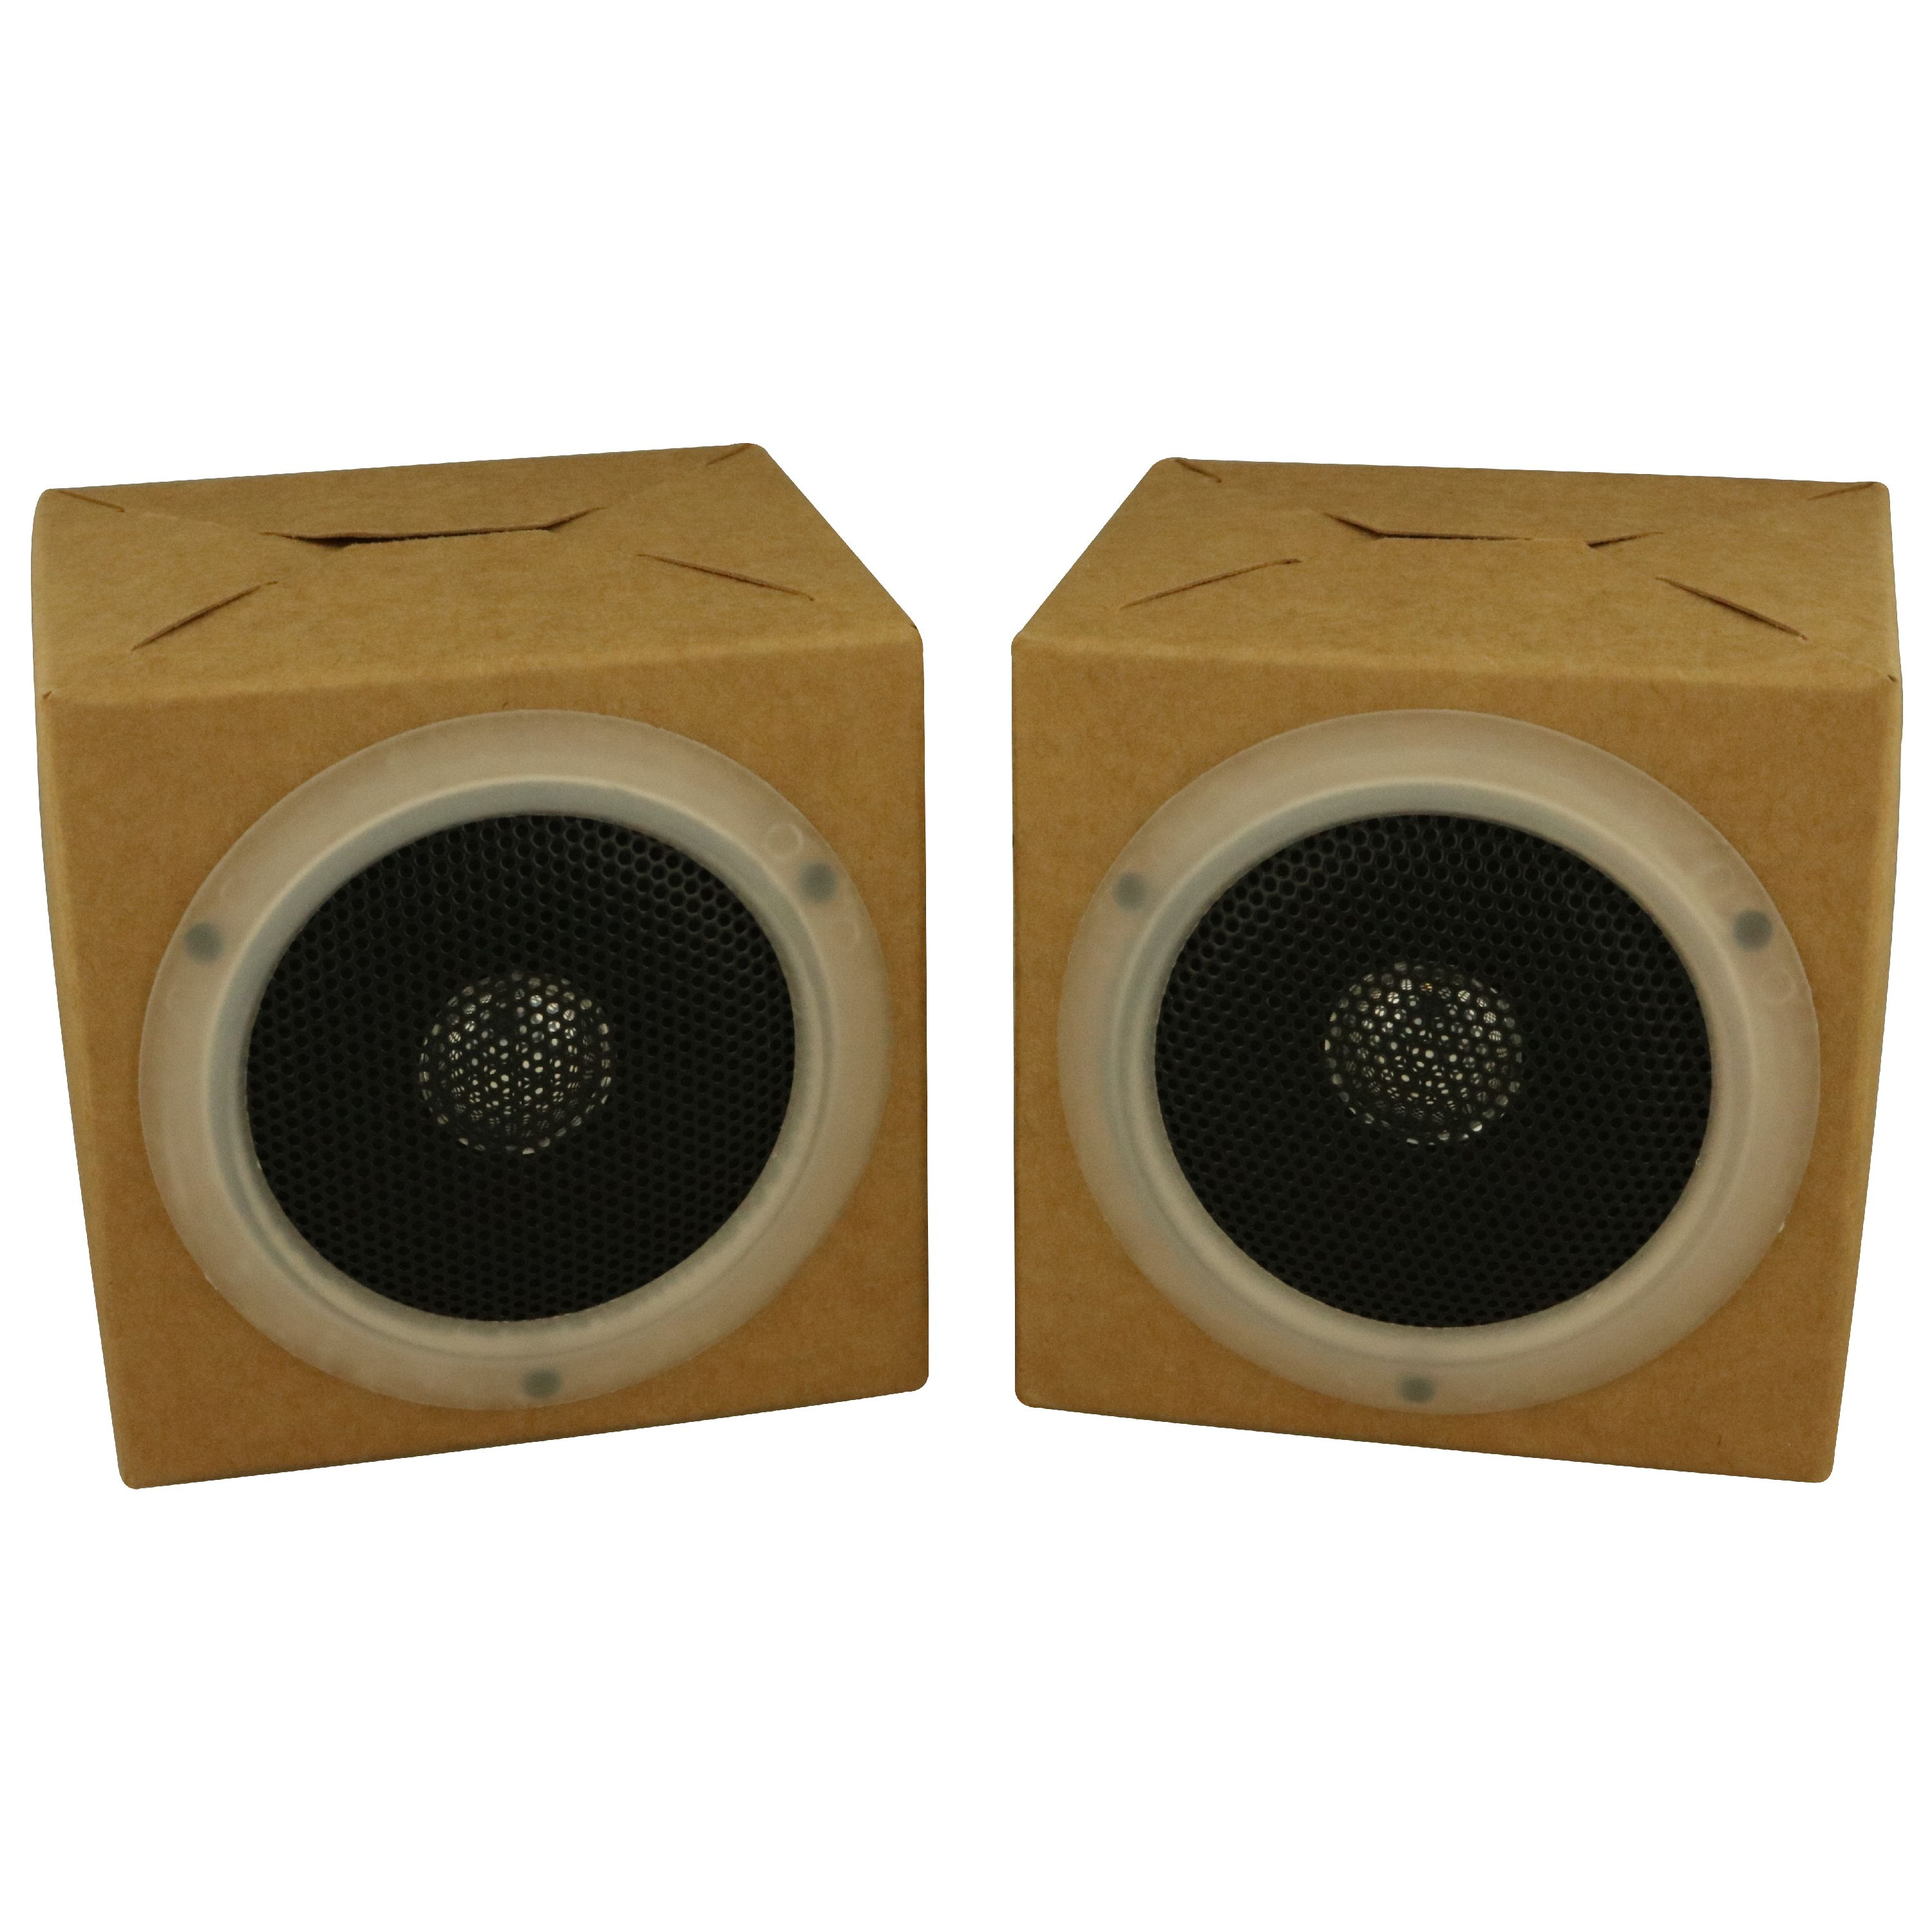 OrigAudio Fold and Play Recycled Cardboard Speakers, Pack of 2